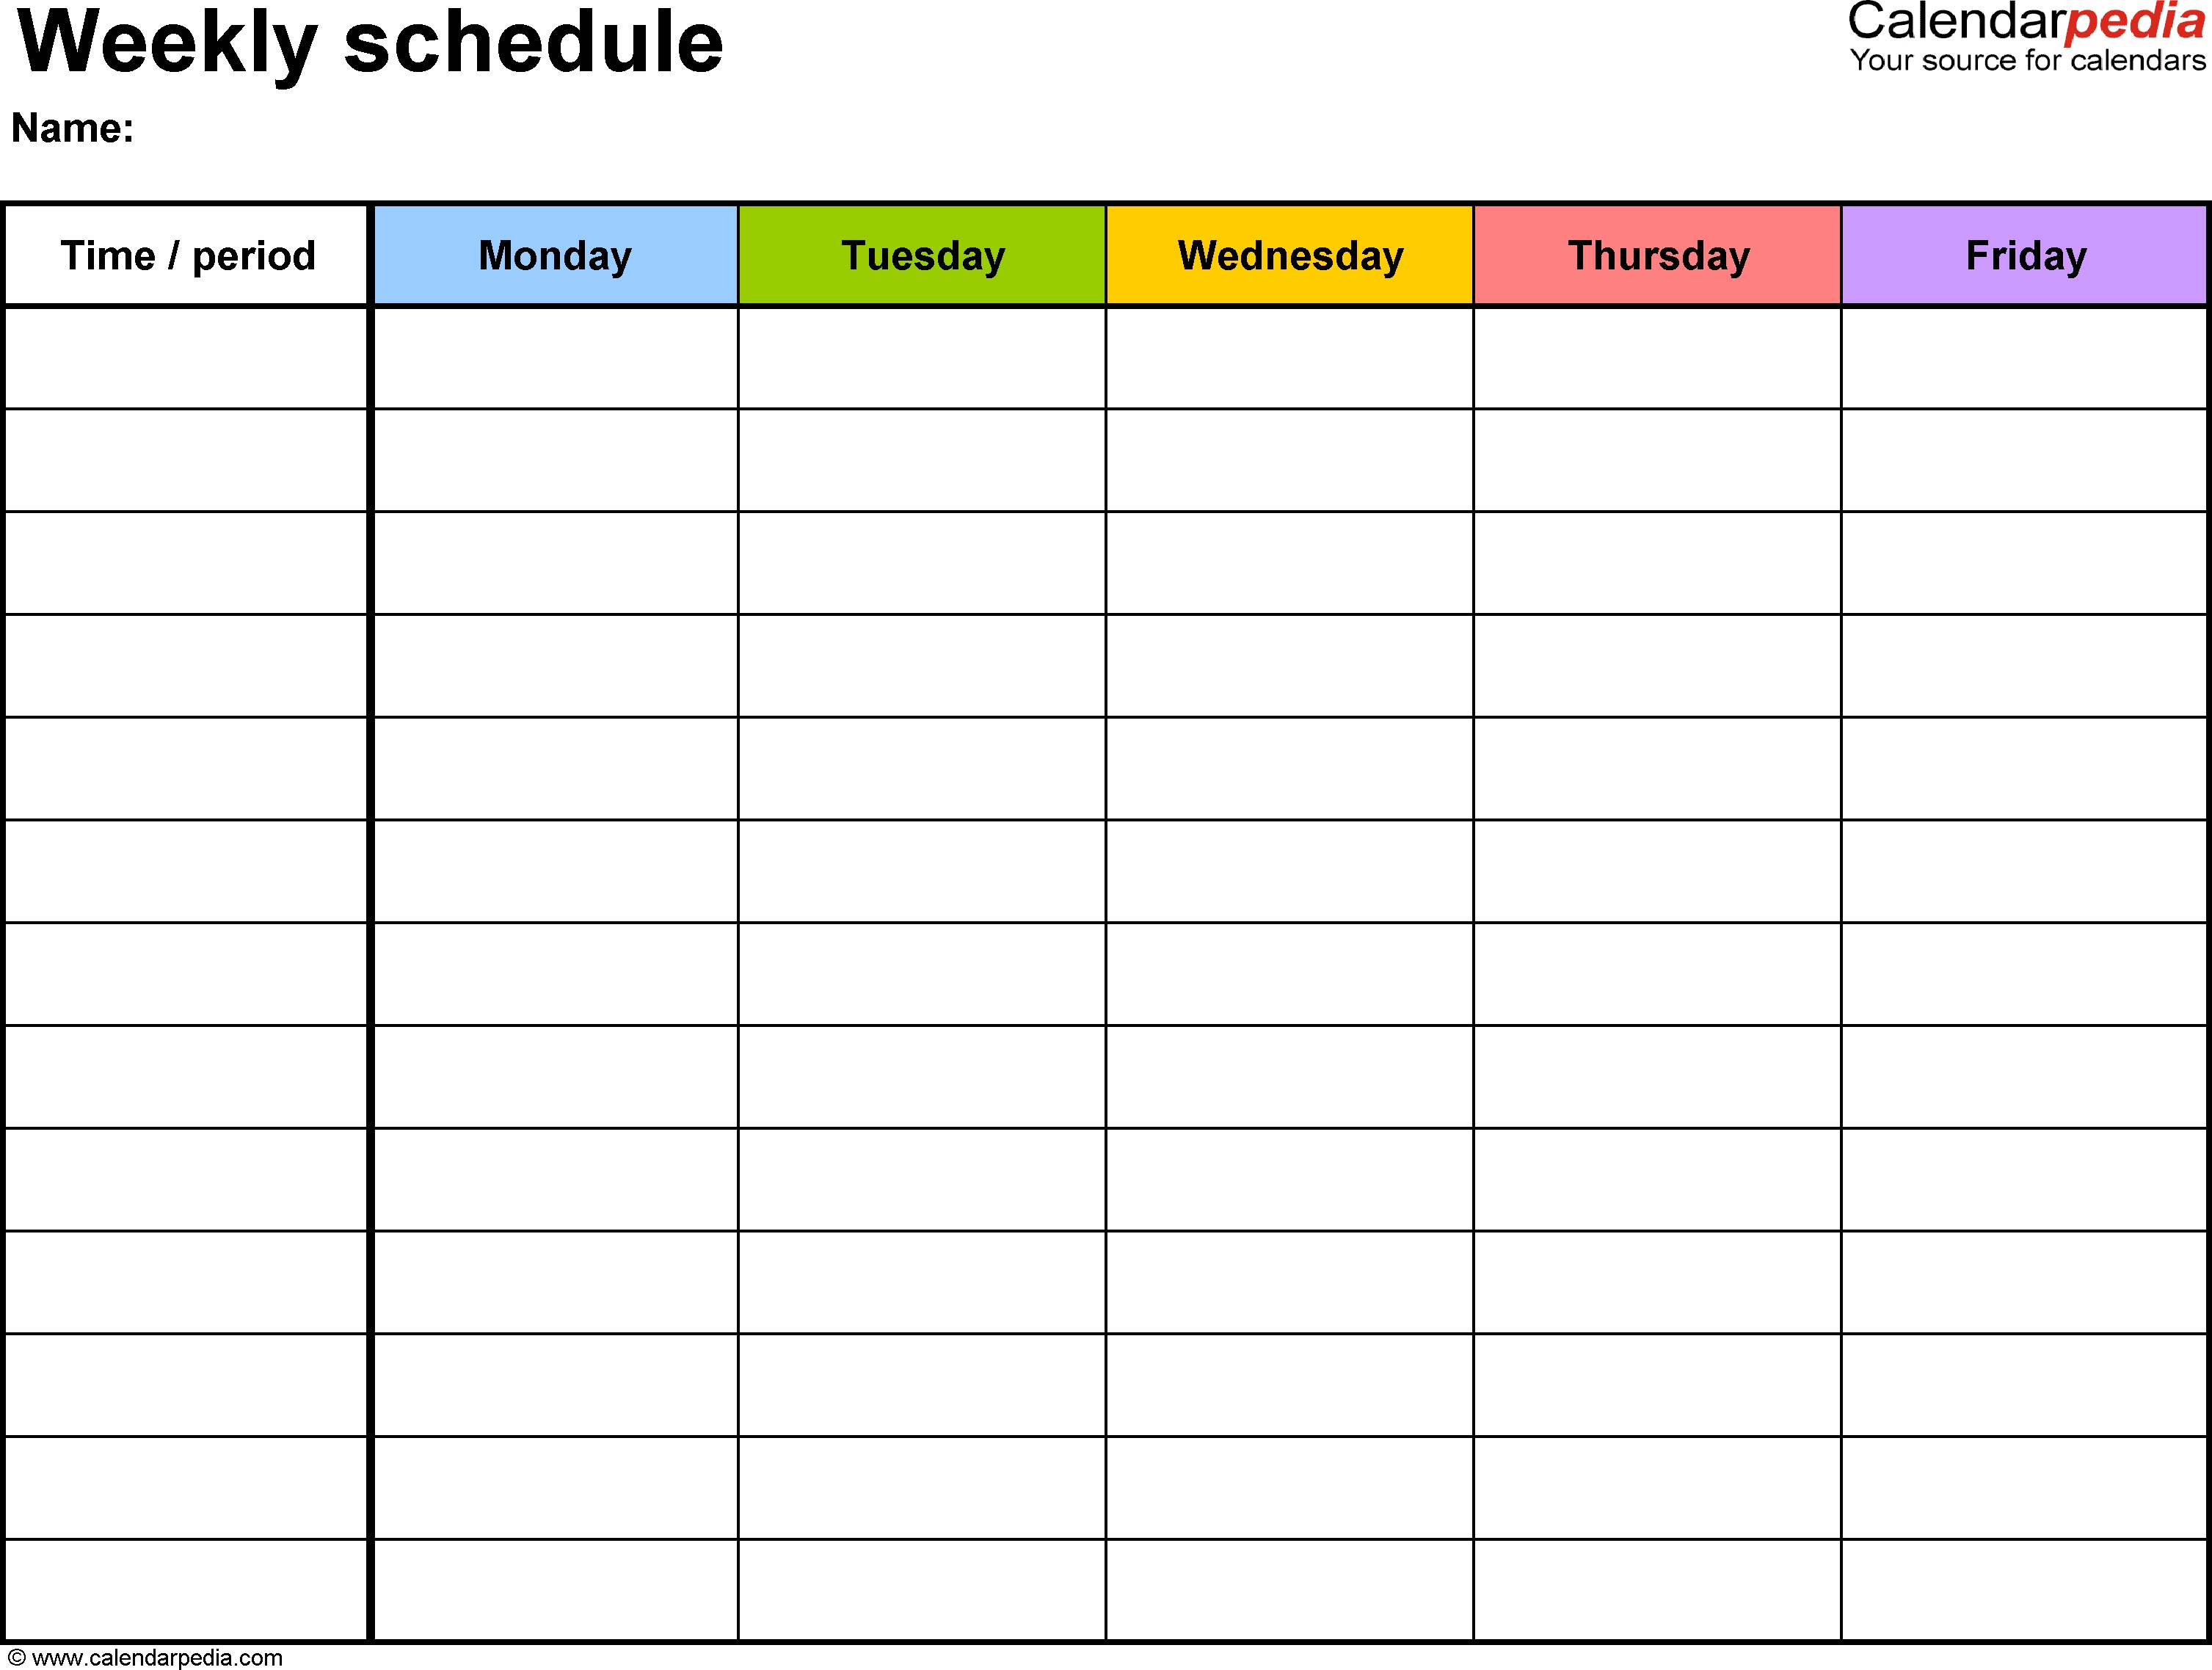 Free Weekly Schedule Templates For Excel - 18 Templates regarding Blank 7-Day Calendar With Time